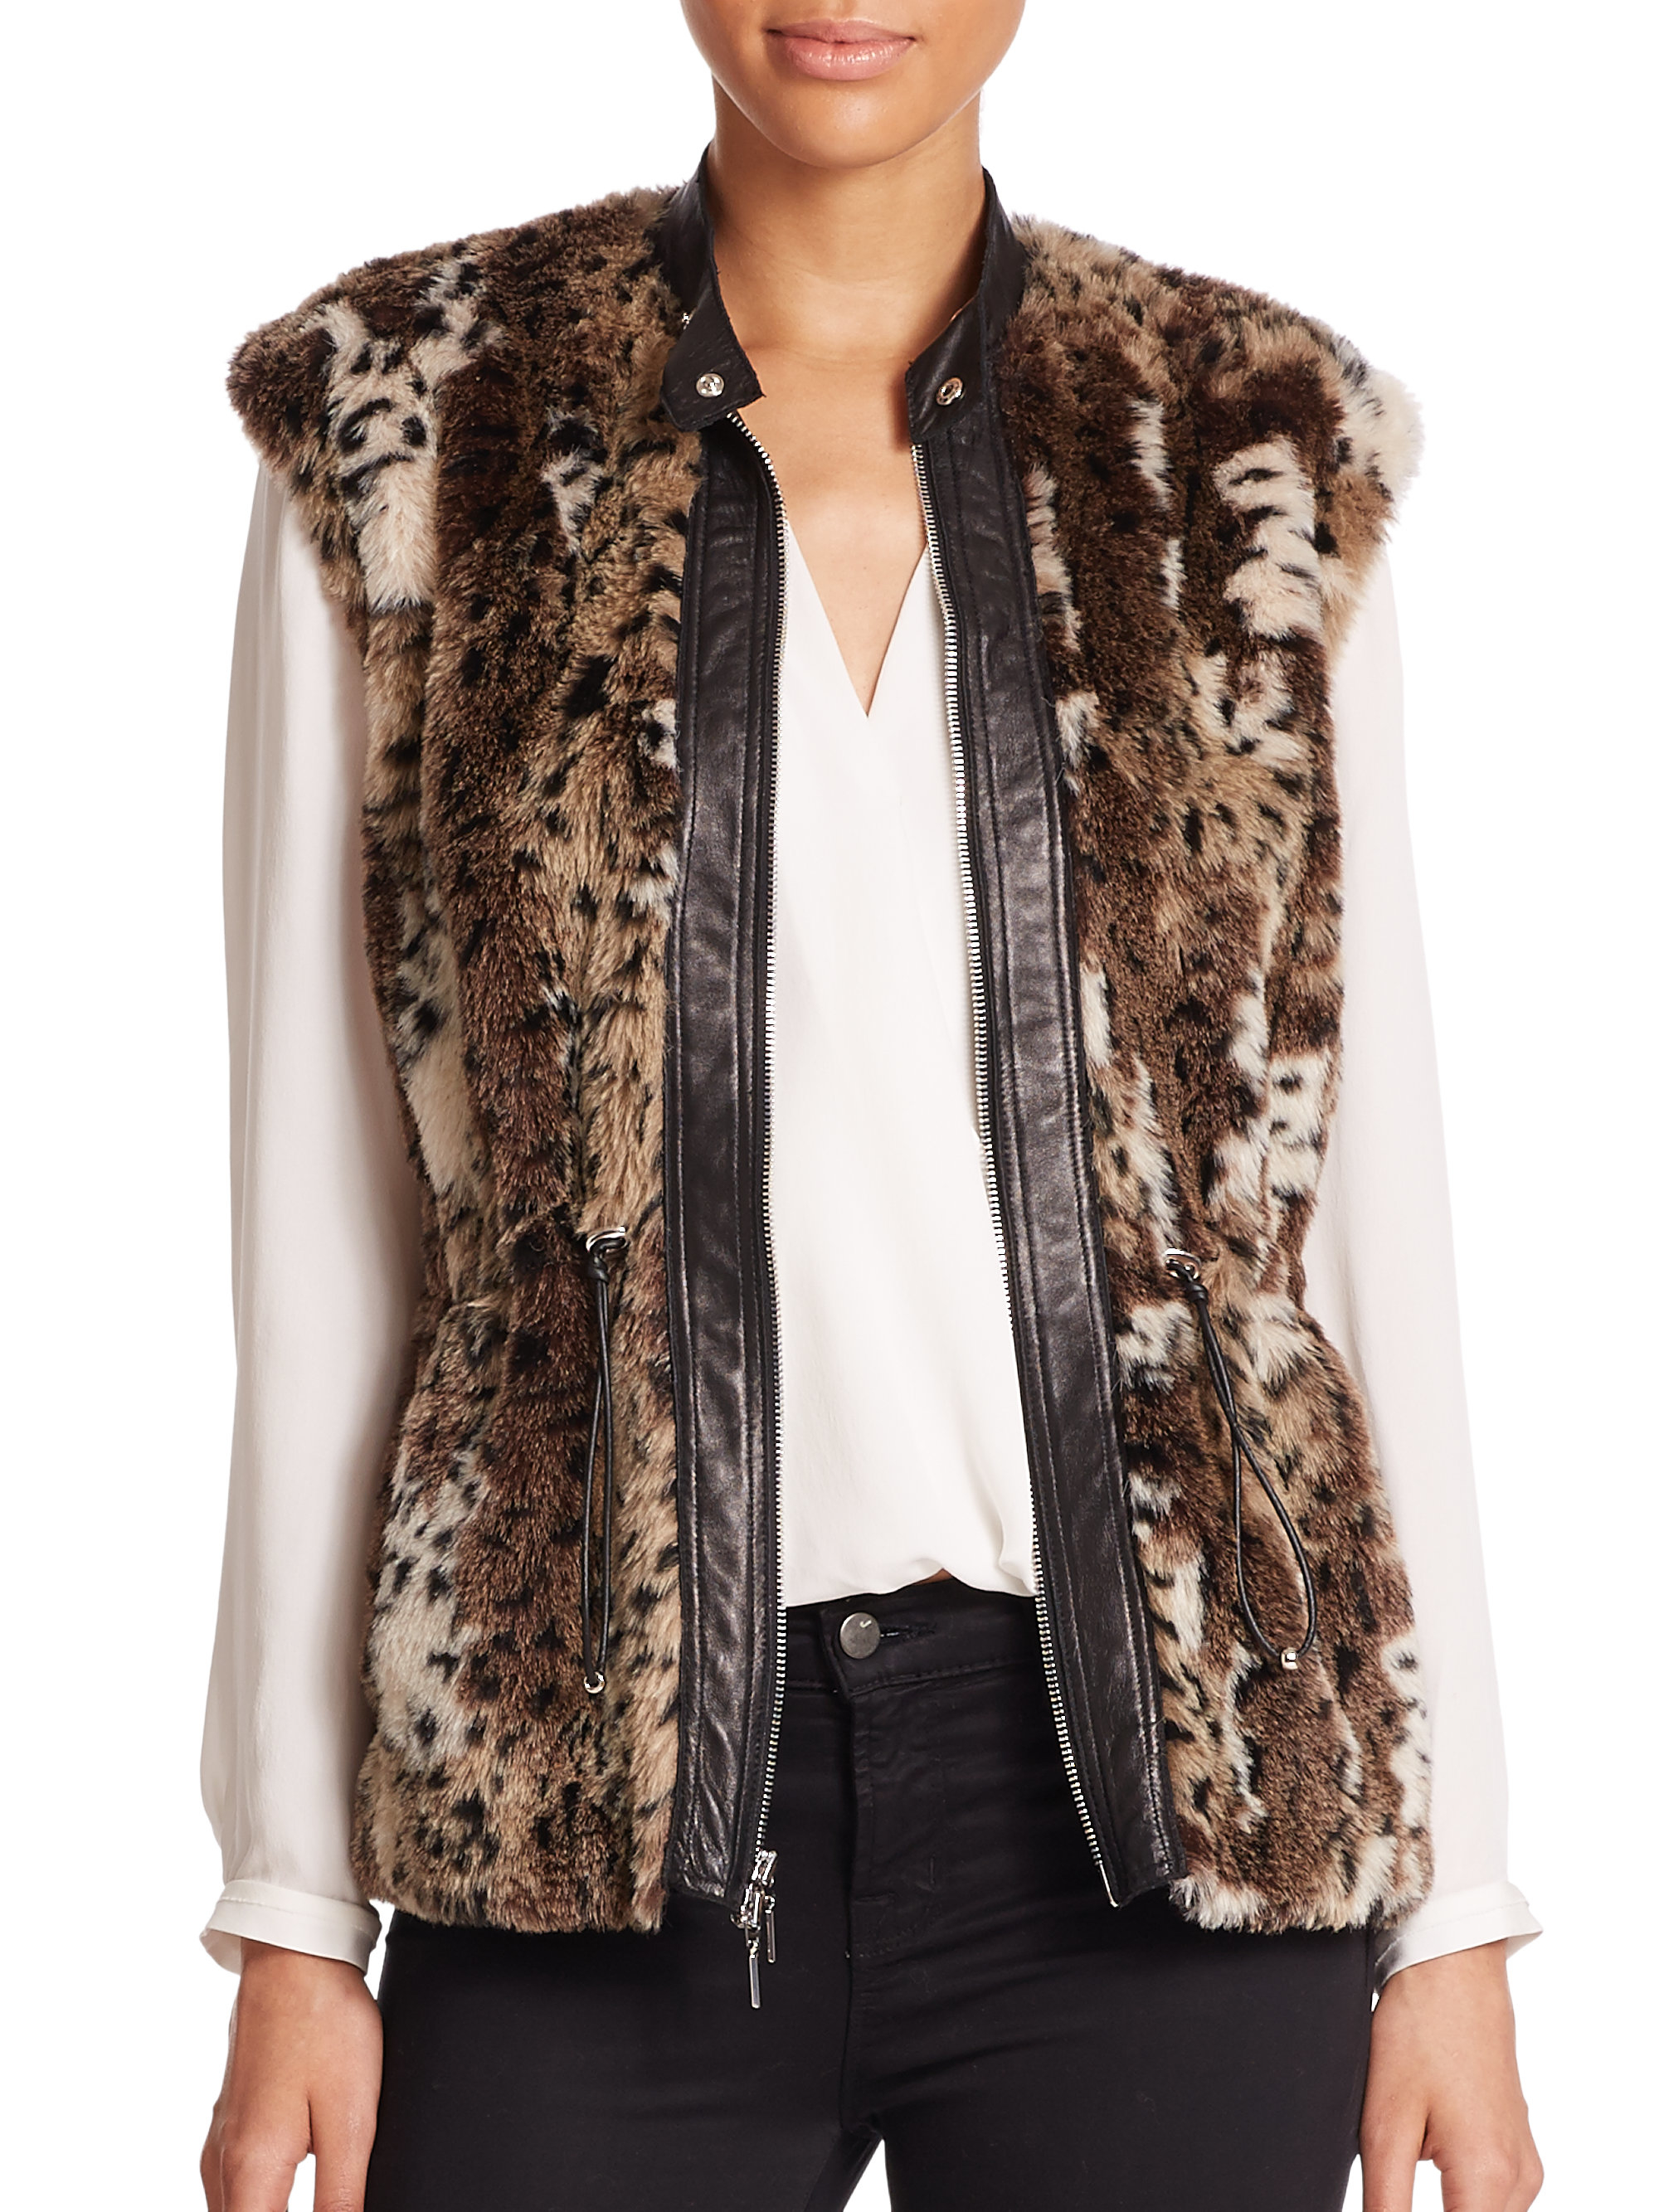 Women's Faux Fur Vests Sort by: Show #: Quick Look. Arctic Fox Knee-Length Faux Fur Vest. In Stock! Leopard Faux Fur Hook Vest. In Stock! Styled for the woman on the go, our Couture Collection faux fur vest is this season's must! To rich.